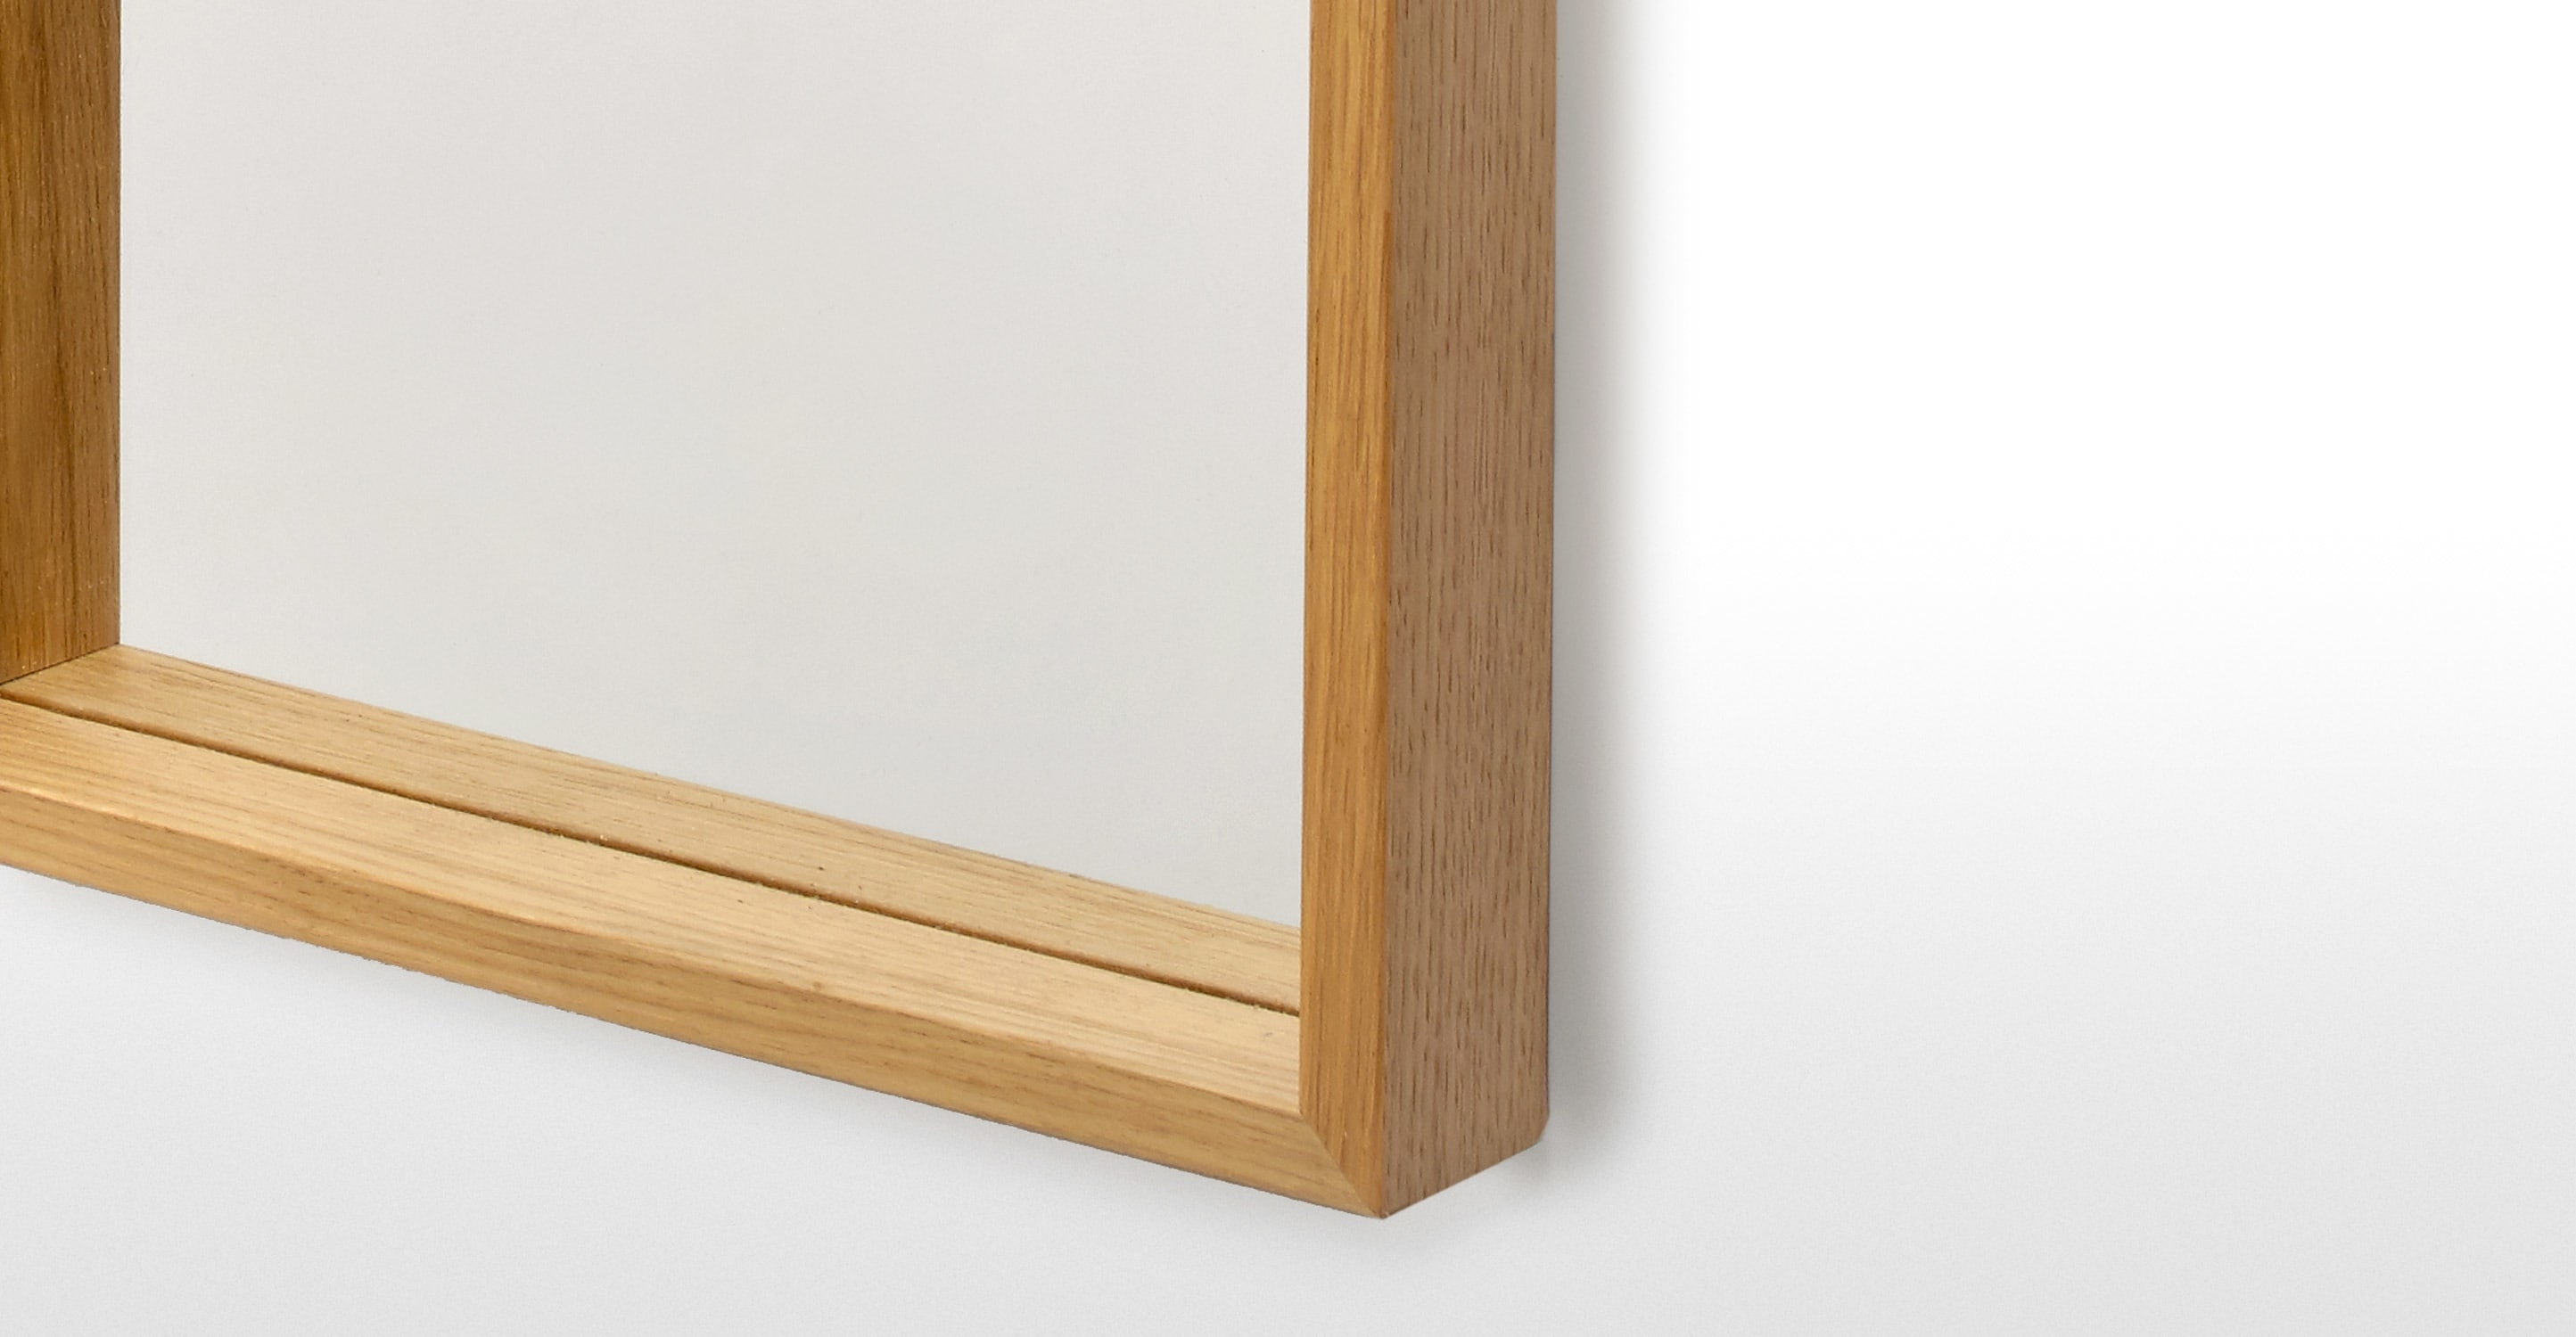 Wilson Wall Mirror 30 X 120cm Oak Made Regarding Oak Wall Mirrors (Image 14 of 15)